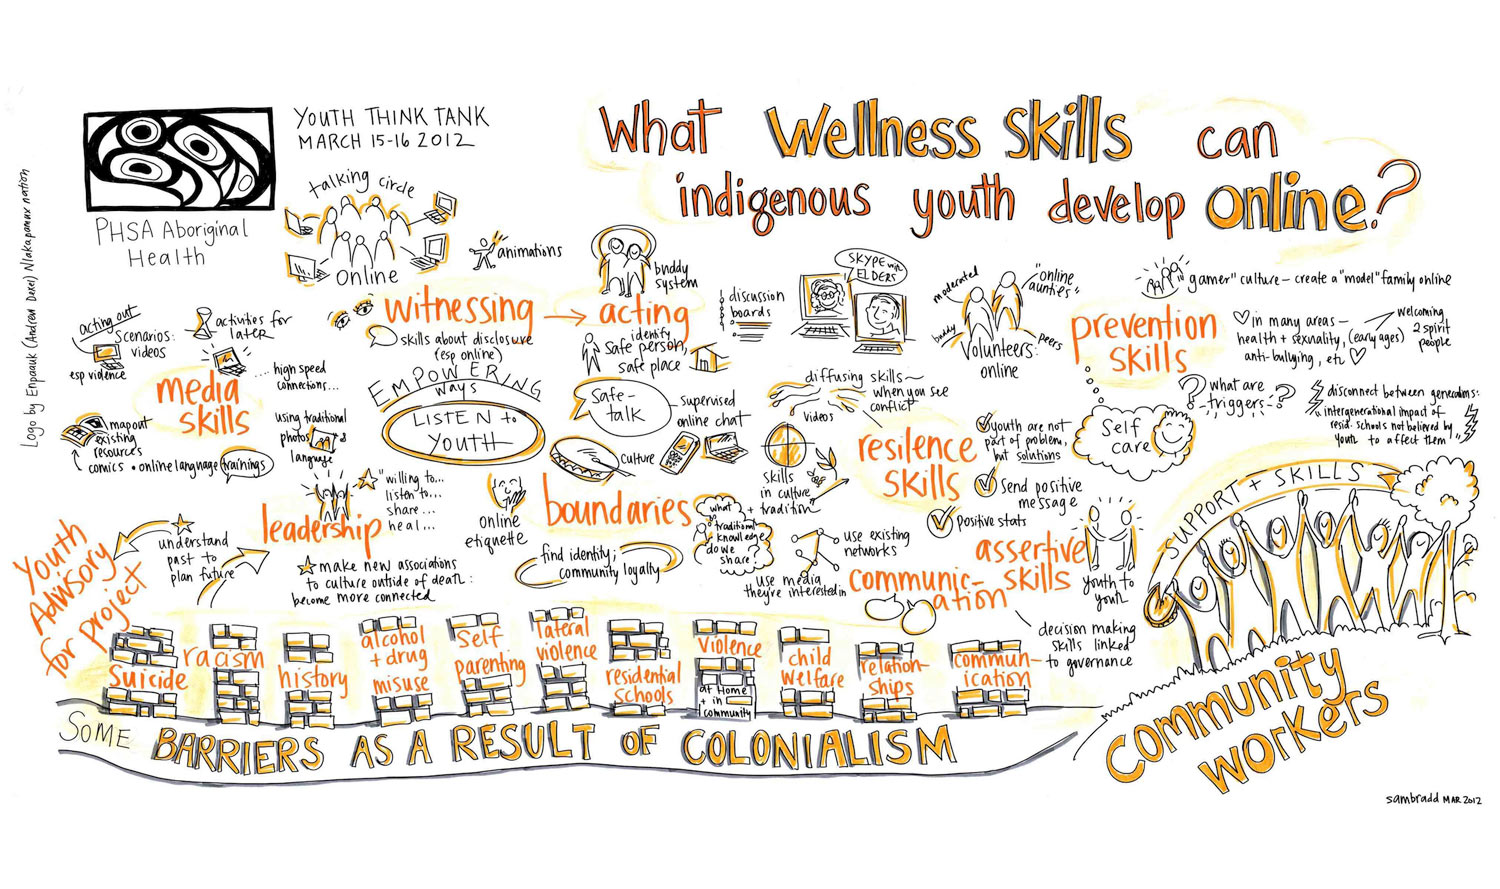 ... of BC - small group work report back about indigenous youth wellness